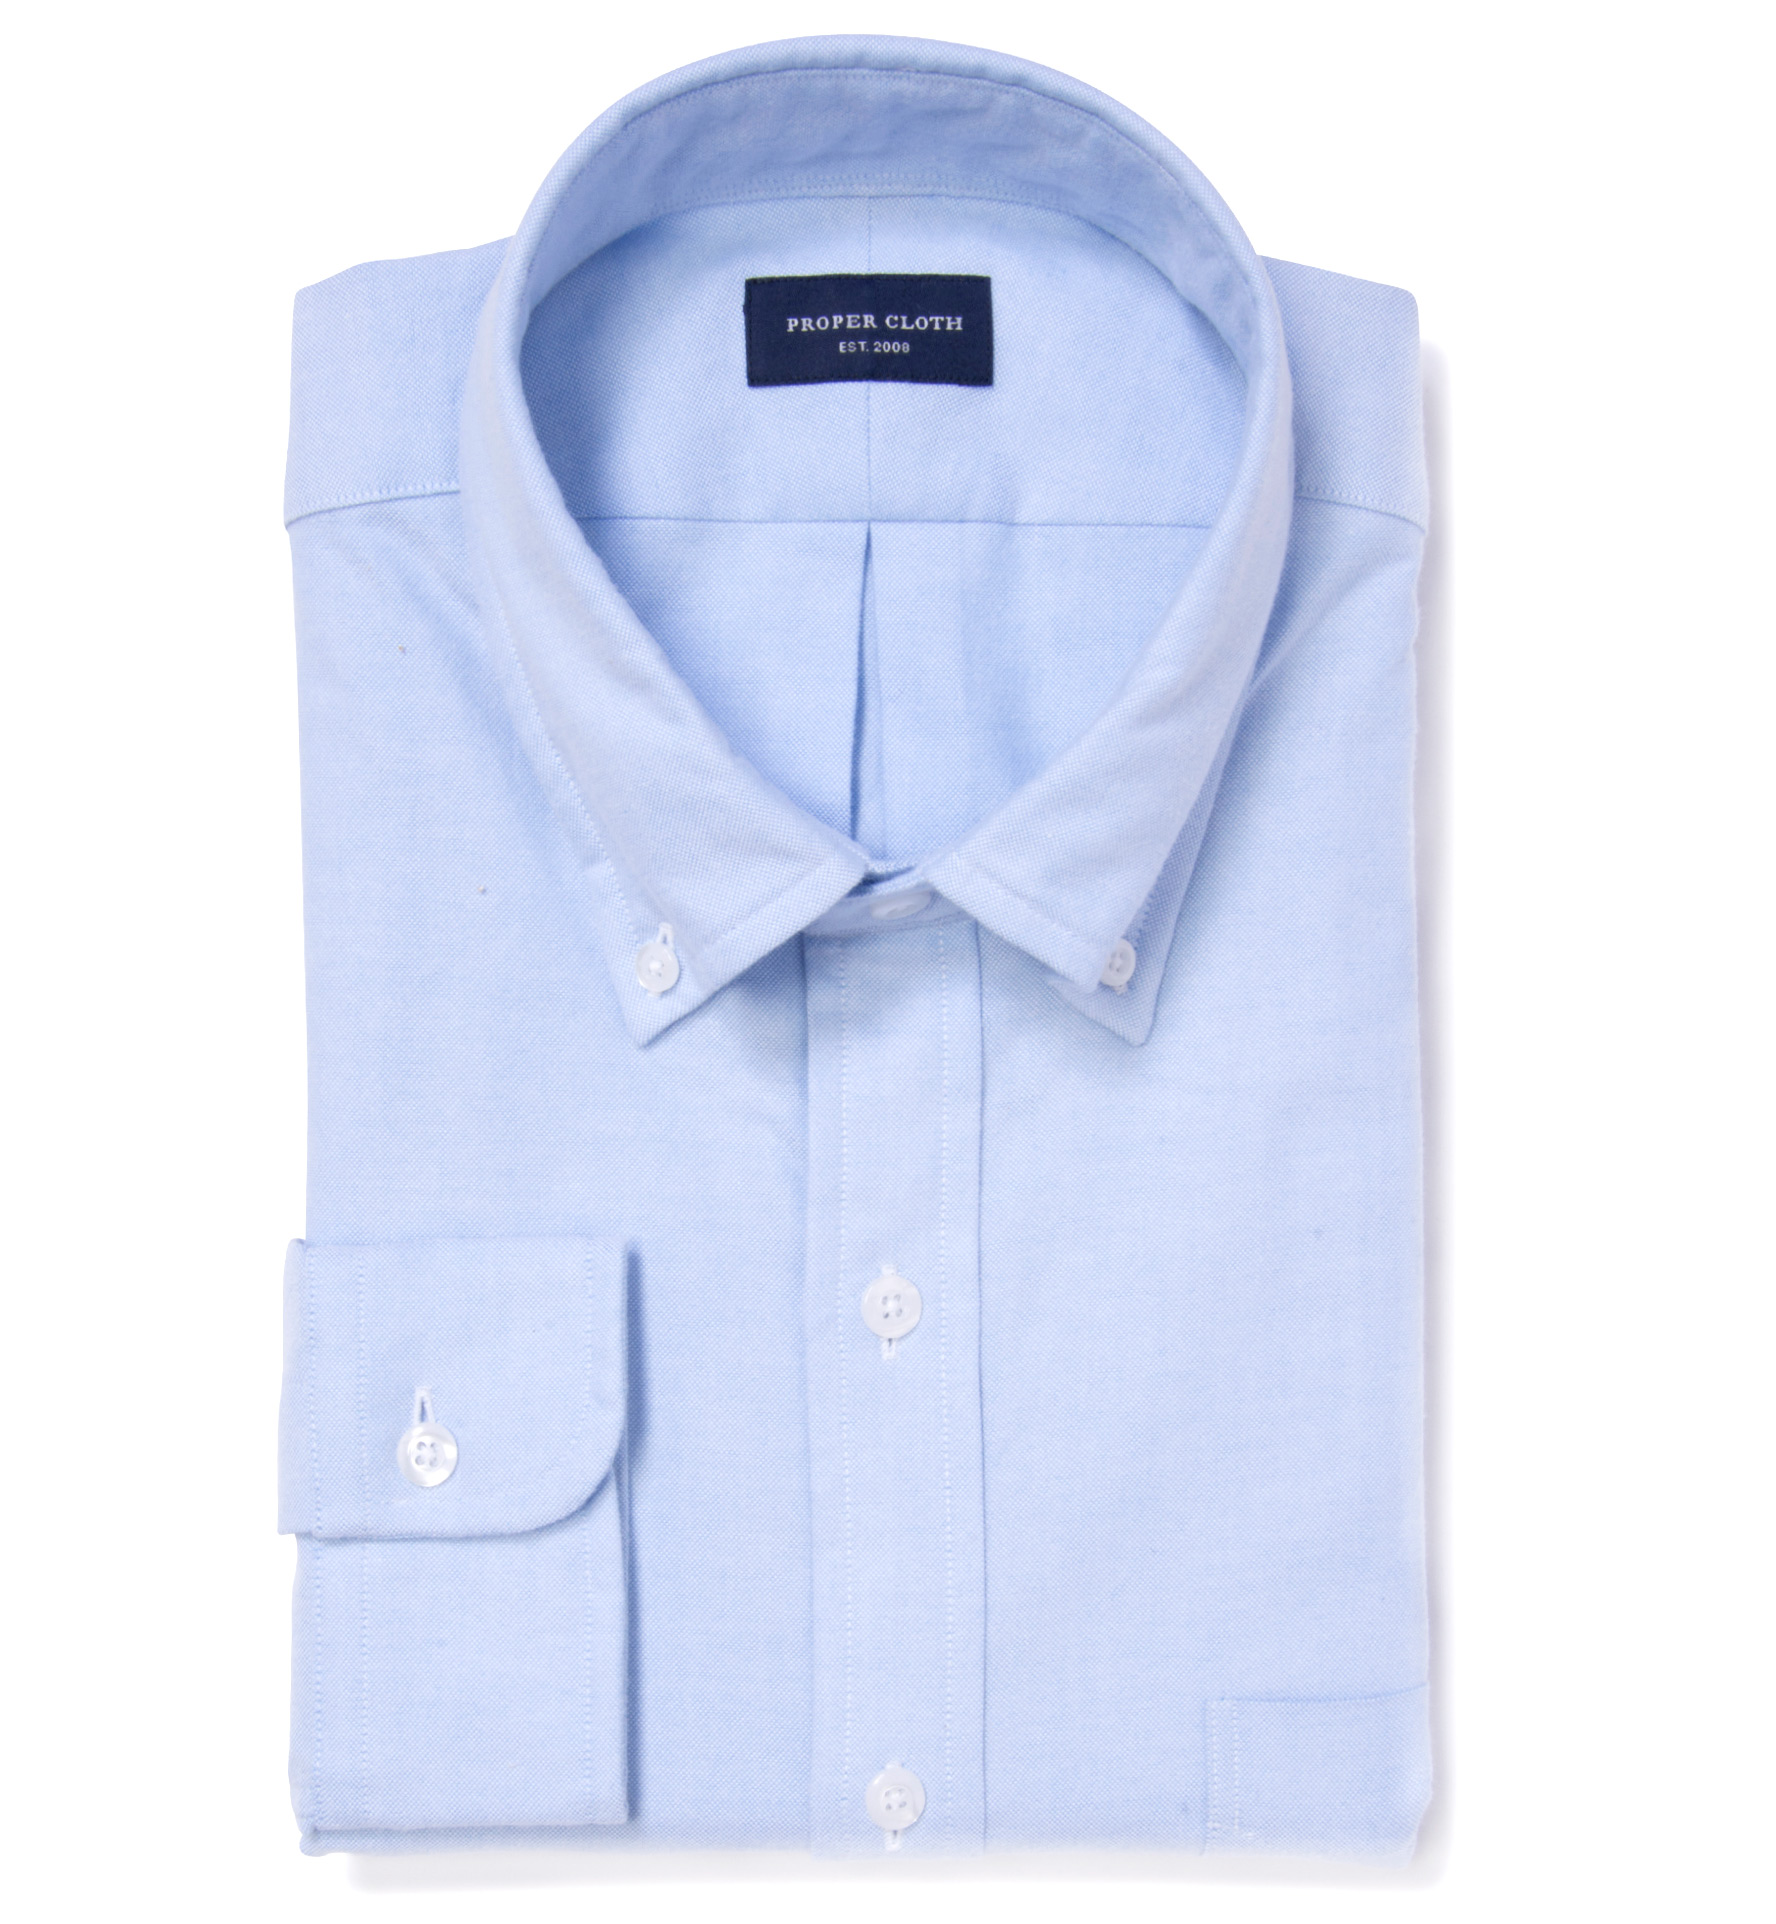 Light blue flannel oxford dress shirt by proper cloth for Proper cloth custom shirt price